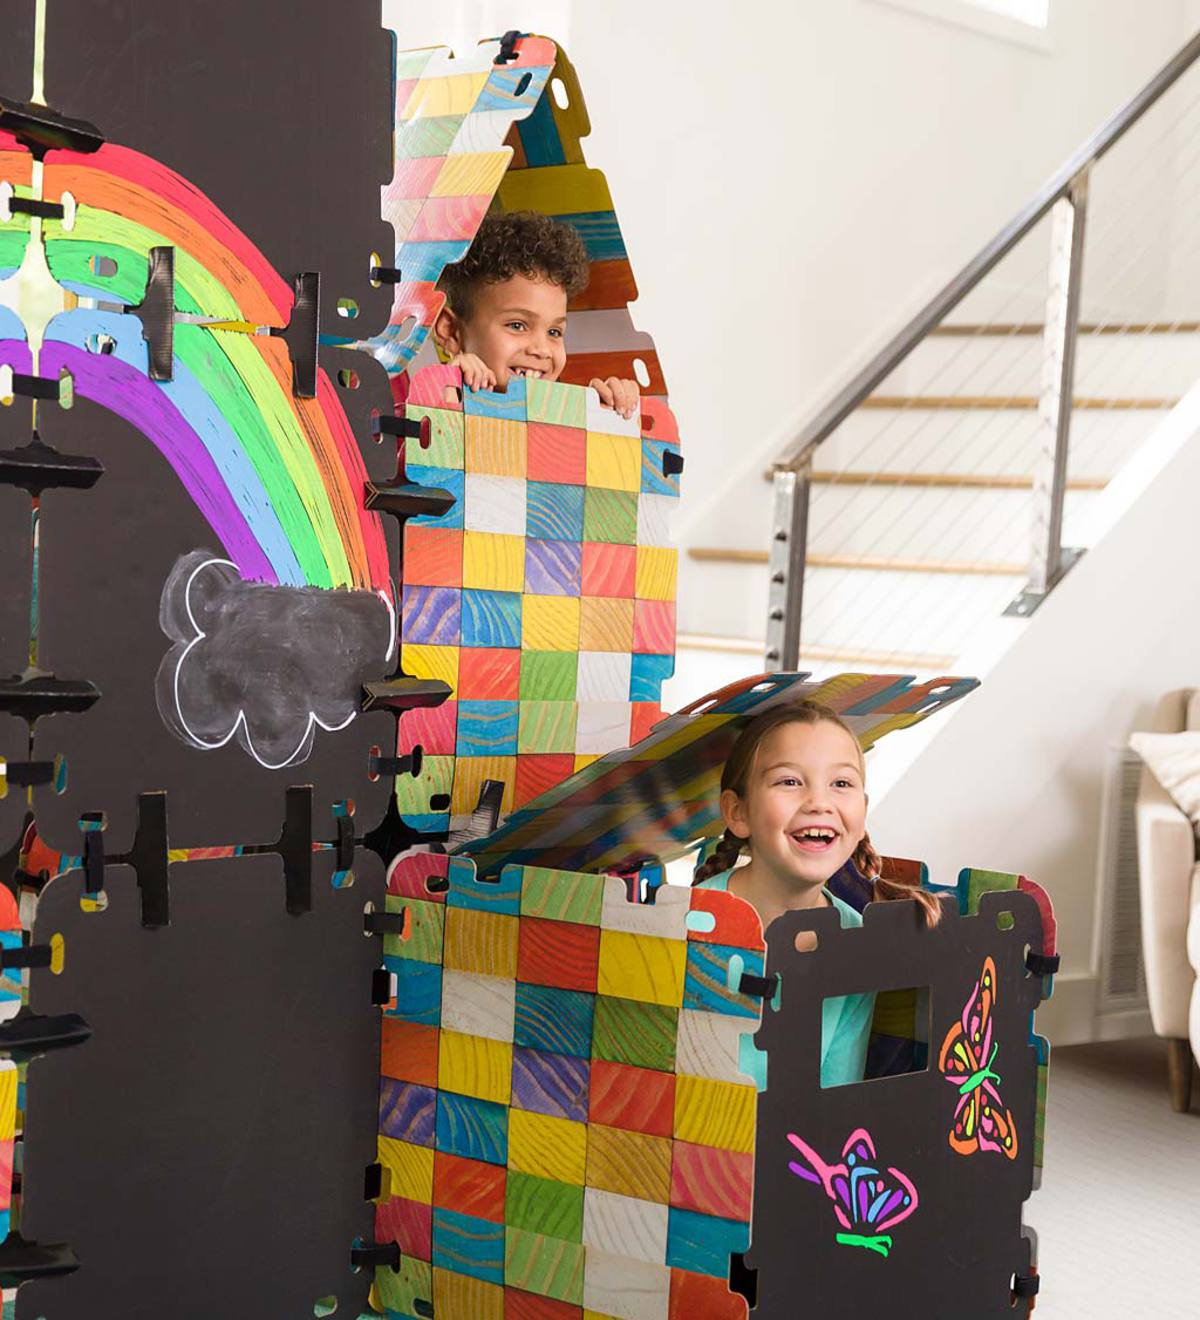 16-Piece Chalkboard Build-A-Fort Kit